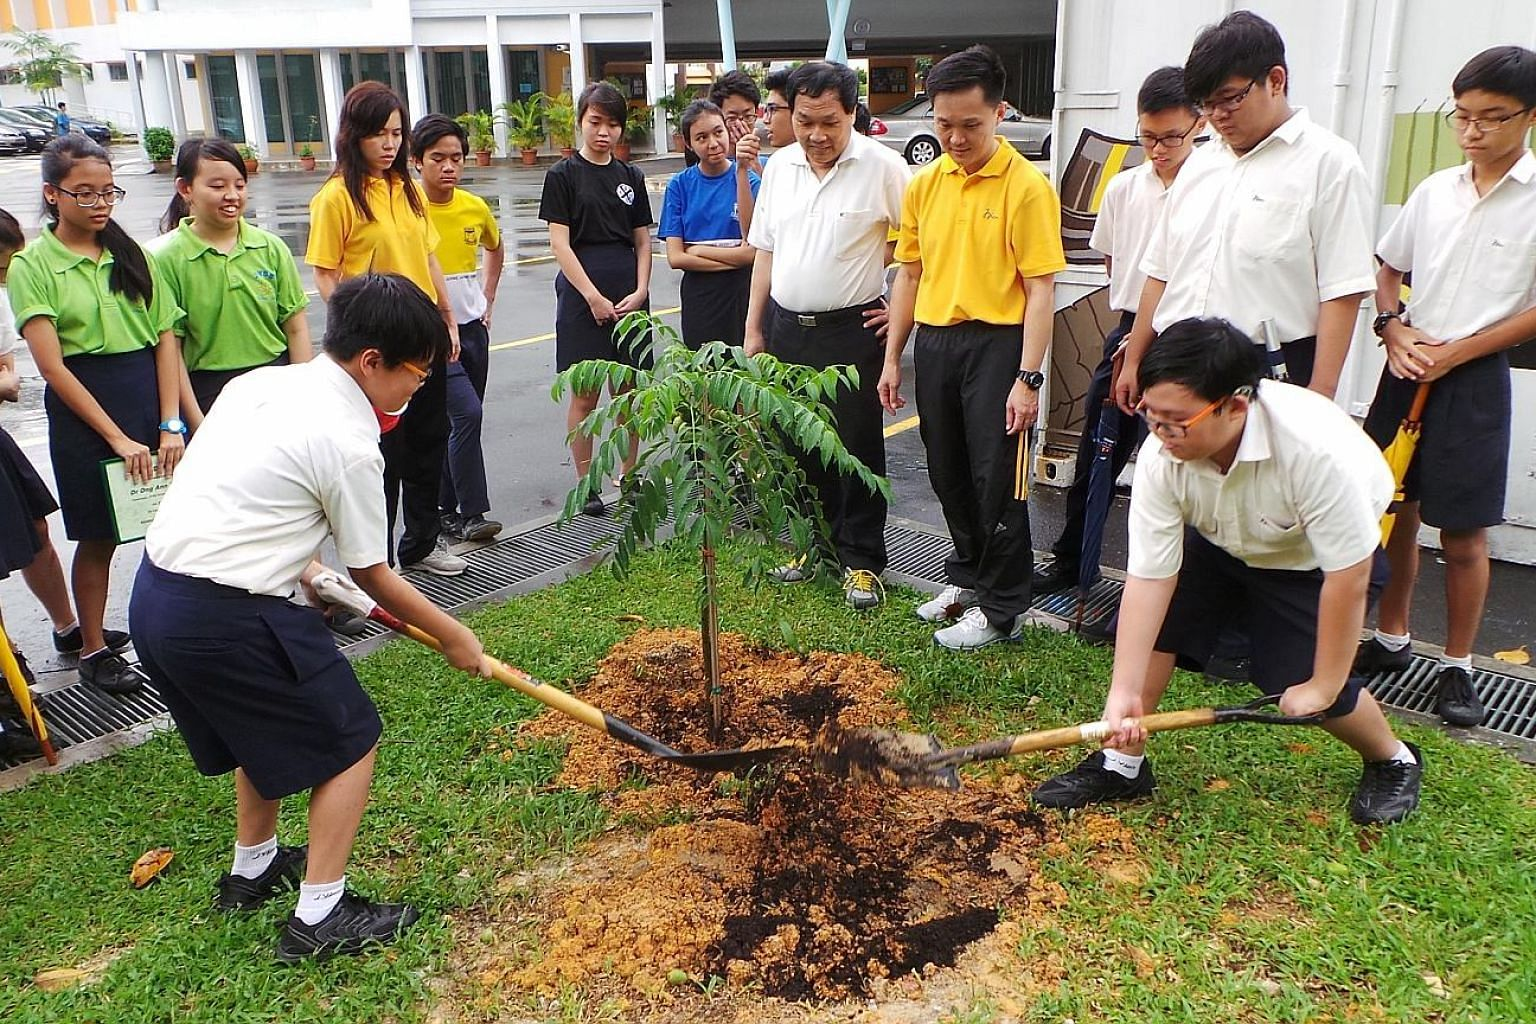 Students from Juying Secondary School planting a tree as part of Biodiversity Week last year. The event was started in 2015 as Biodiversity Week for Schools, with workshops designed for students, from pre-school to secondary school. It was expanded l